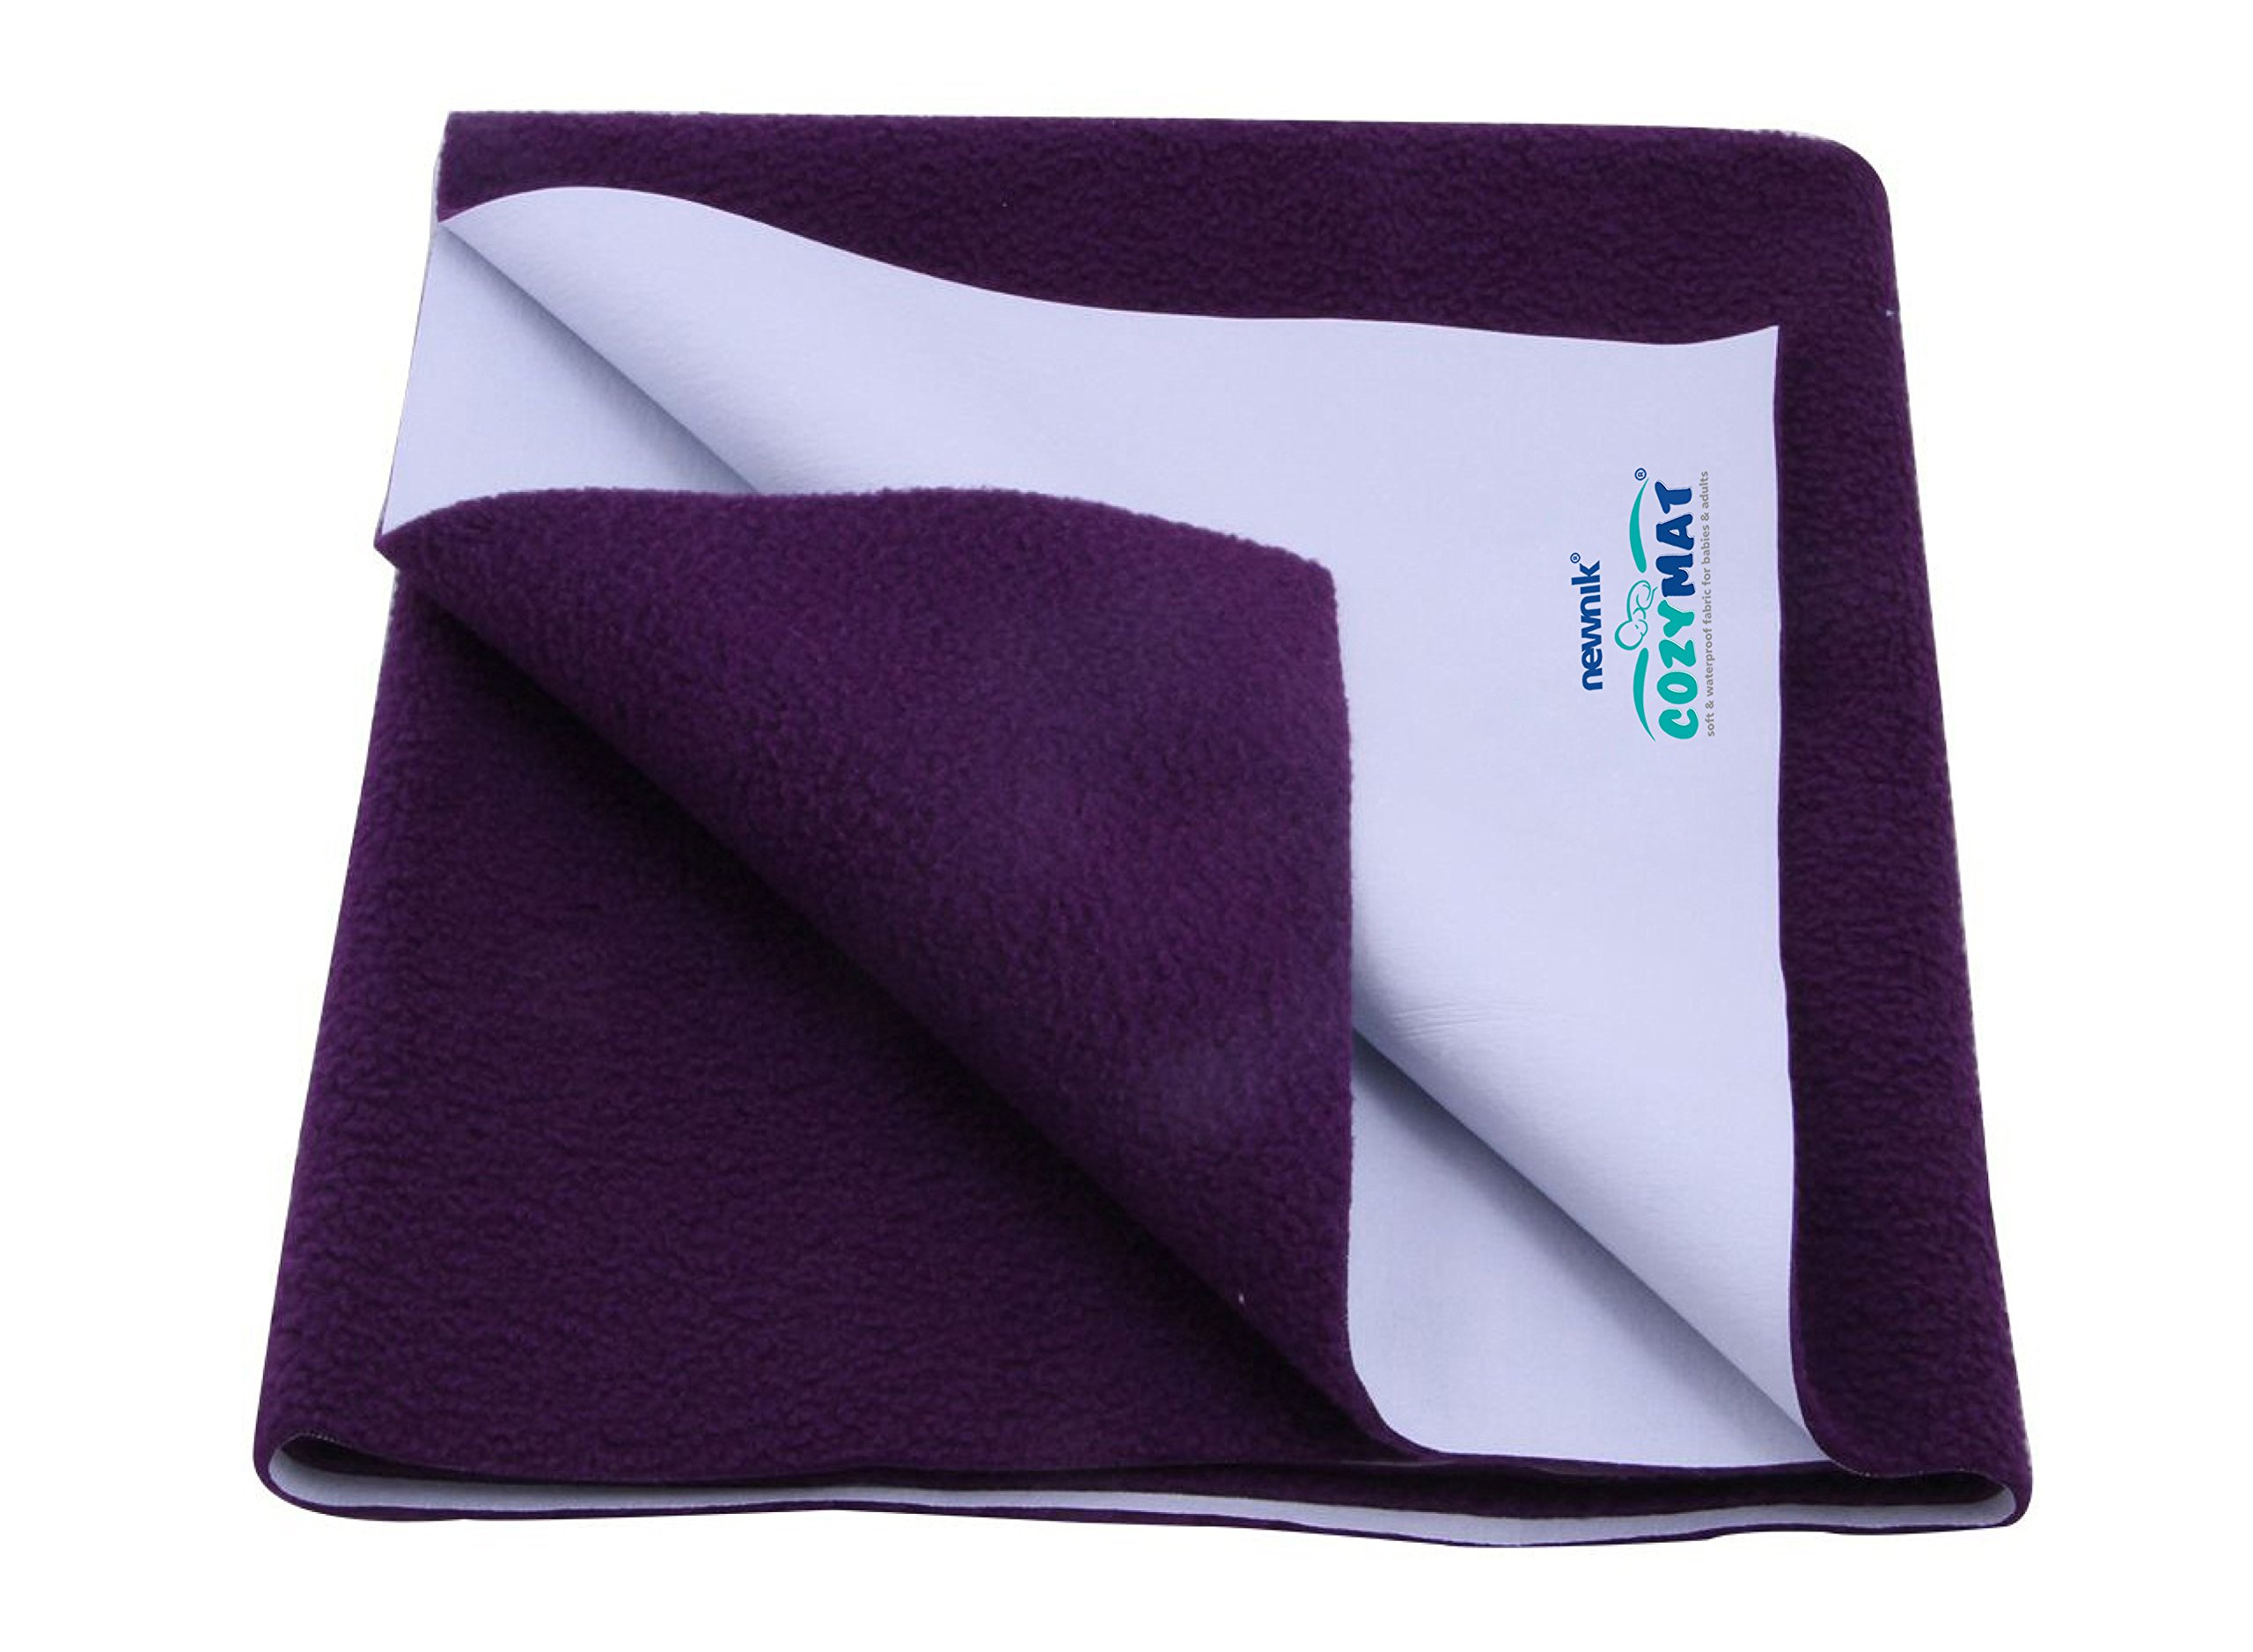 Cozymat Dry Sheet Waterproof Breathable Bed Protector (Size: 140cm X 100cm) Plum, Large by cozymat